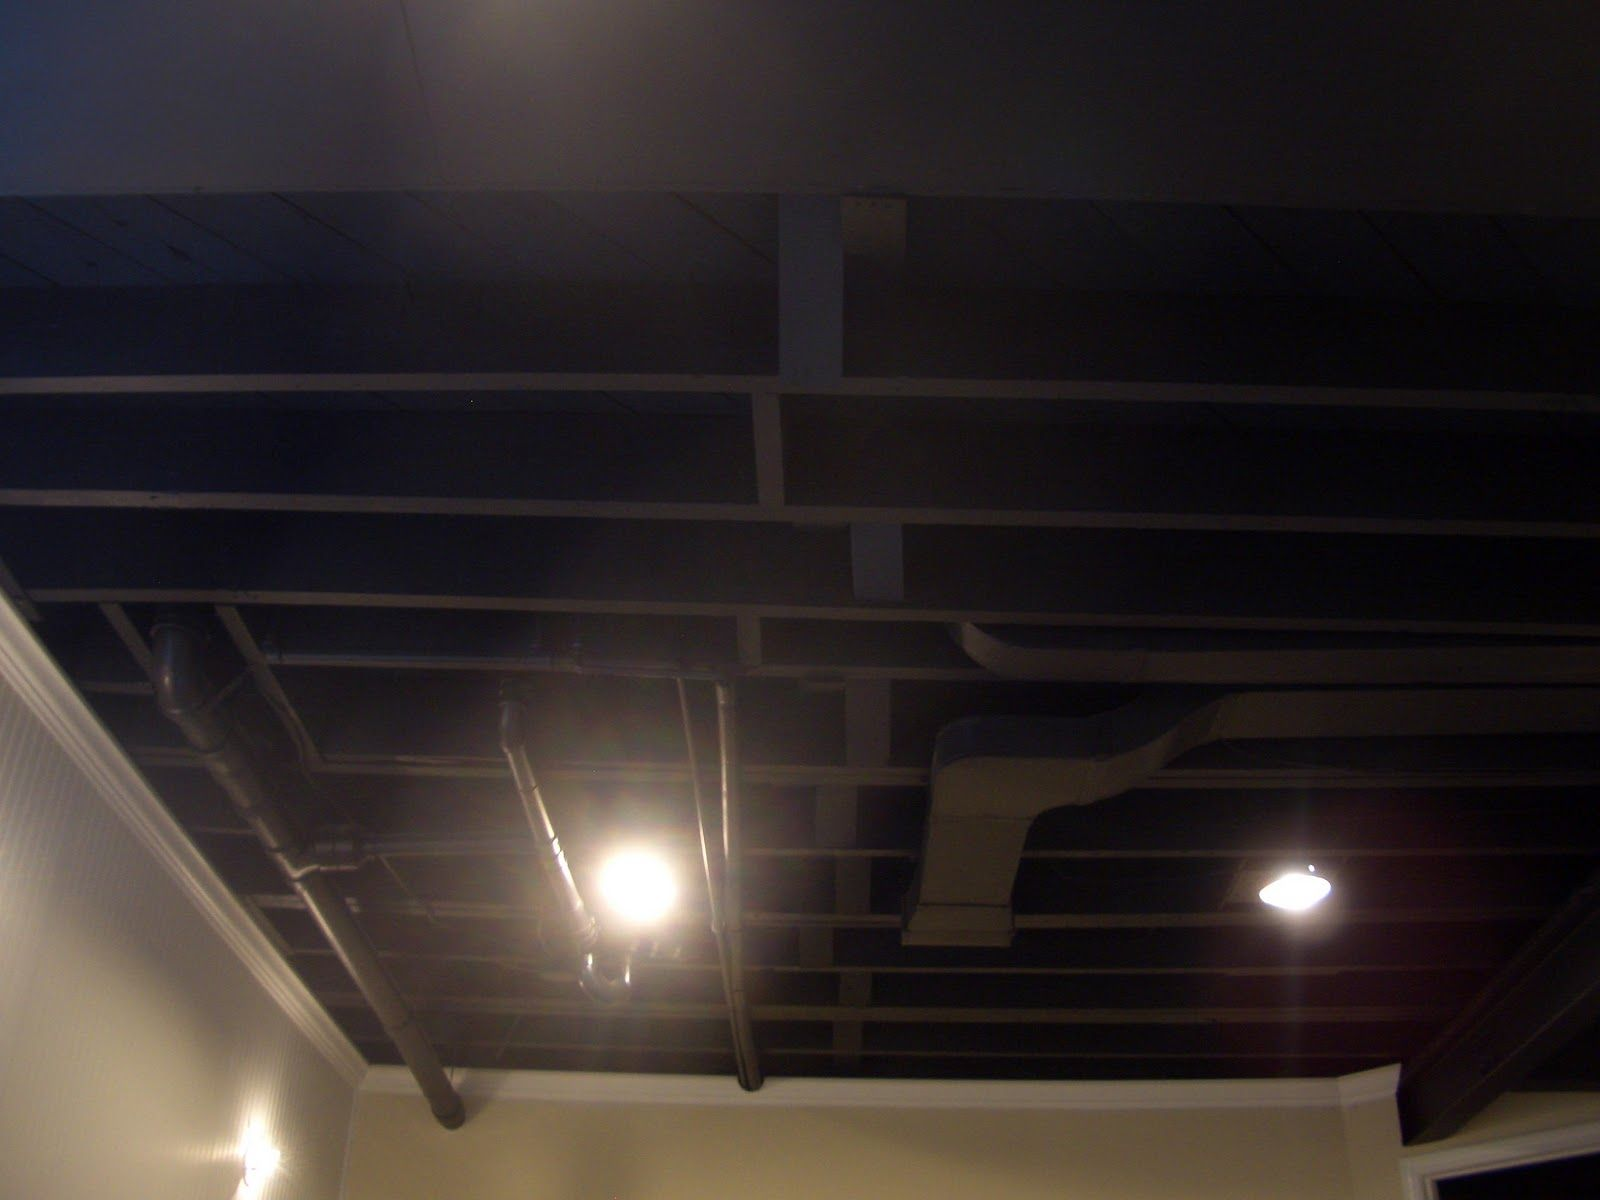 basement options budget drop drywall size of unfinished low to cheap suspended full finish ceiling a ceilings ideas vs makeover way unique lighting